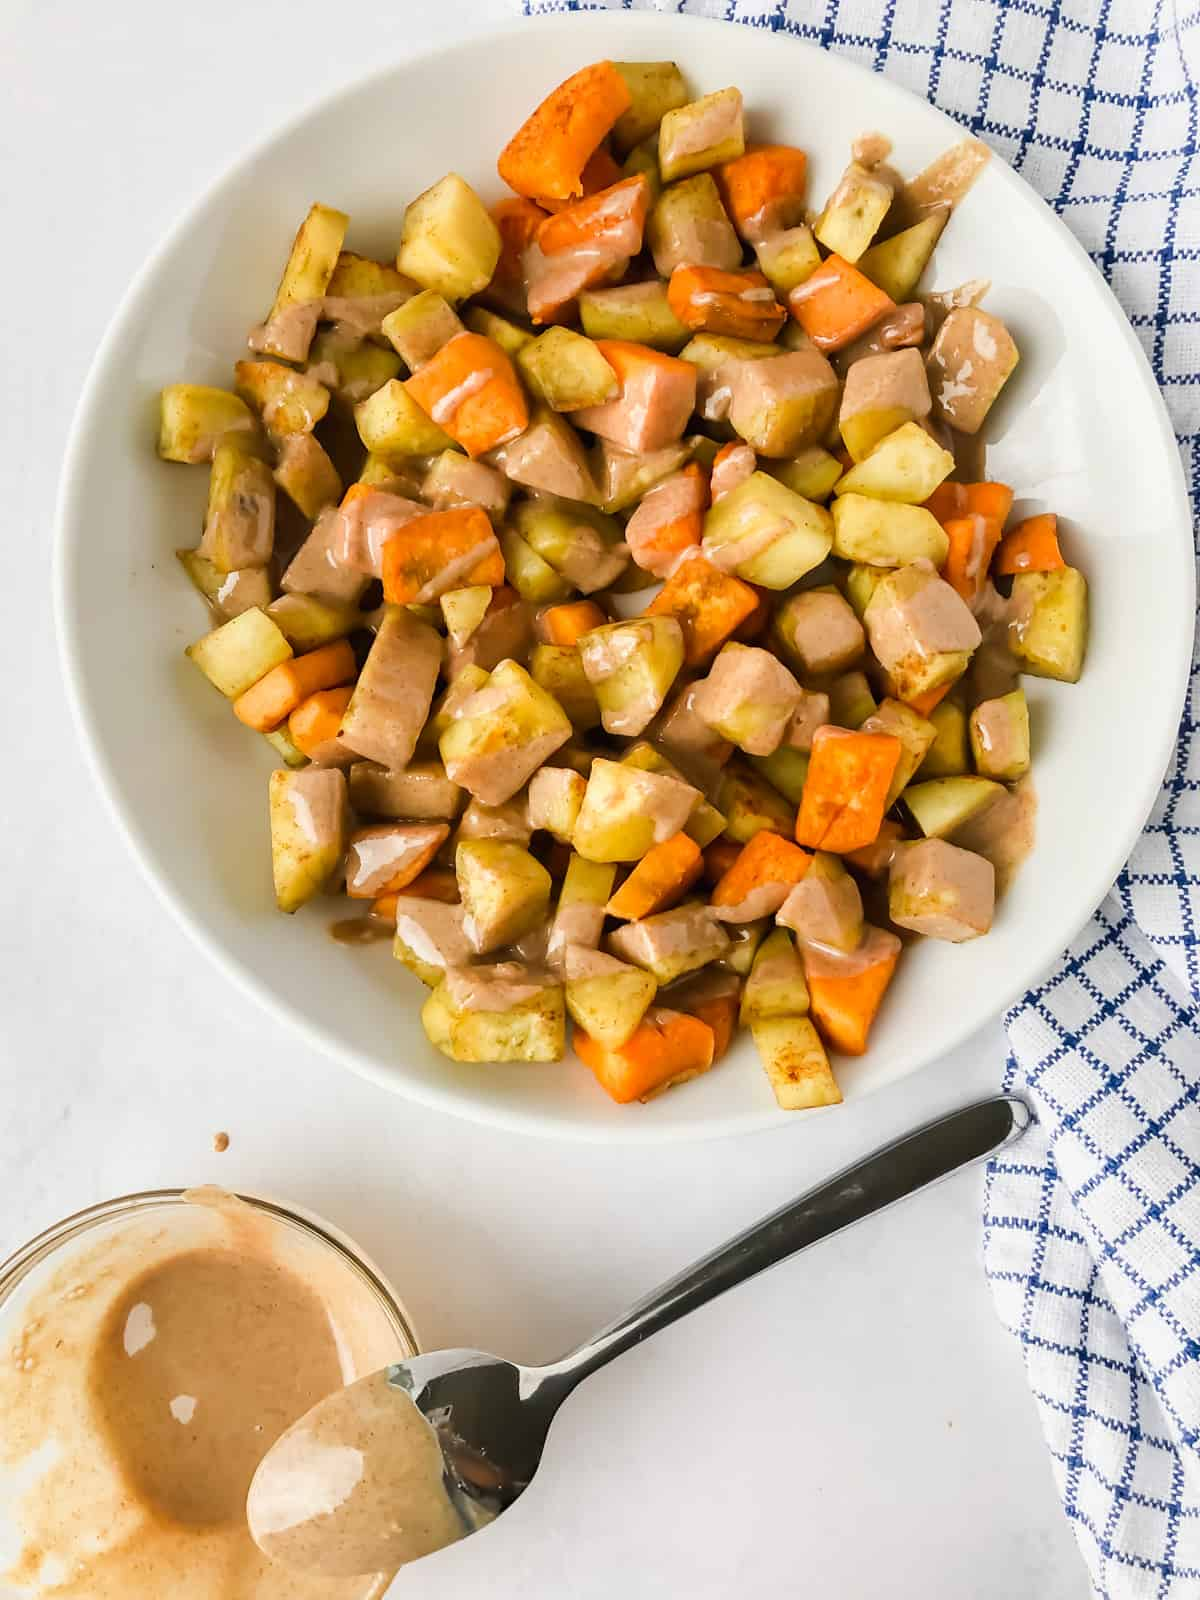 sauteed sweet potatoes and tahini butter in bowls on white surface with blue napkin